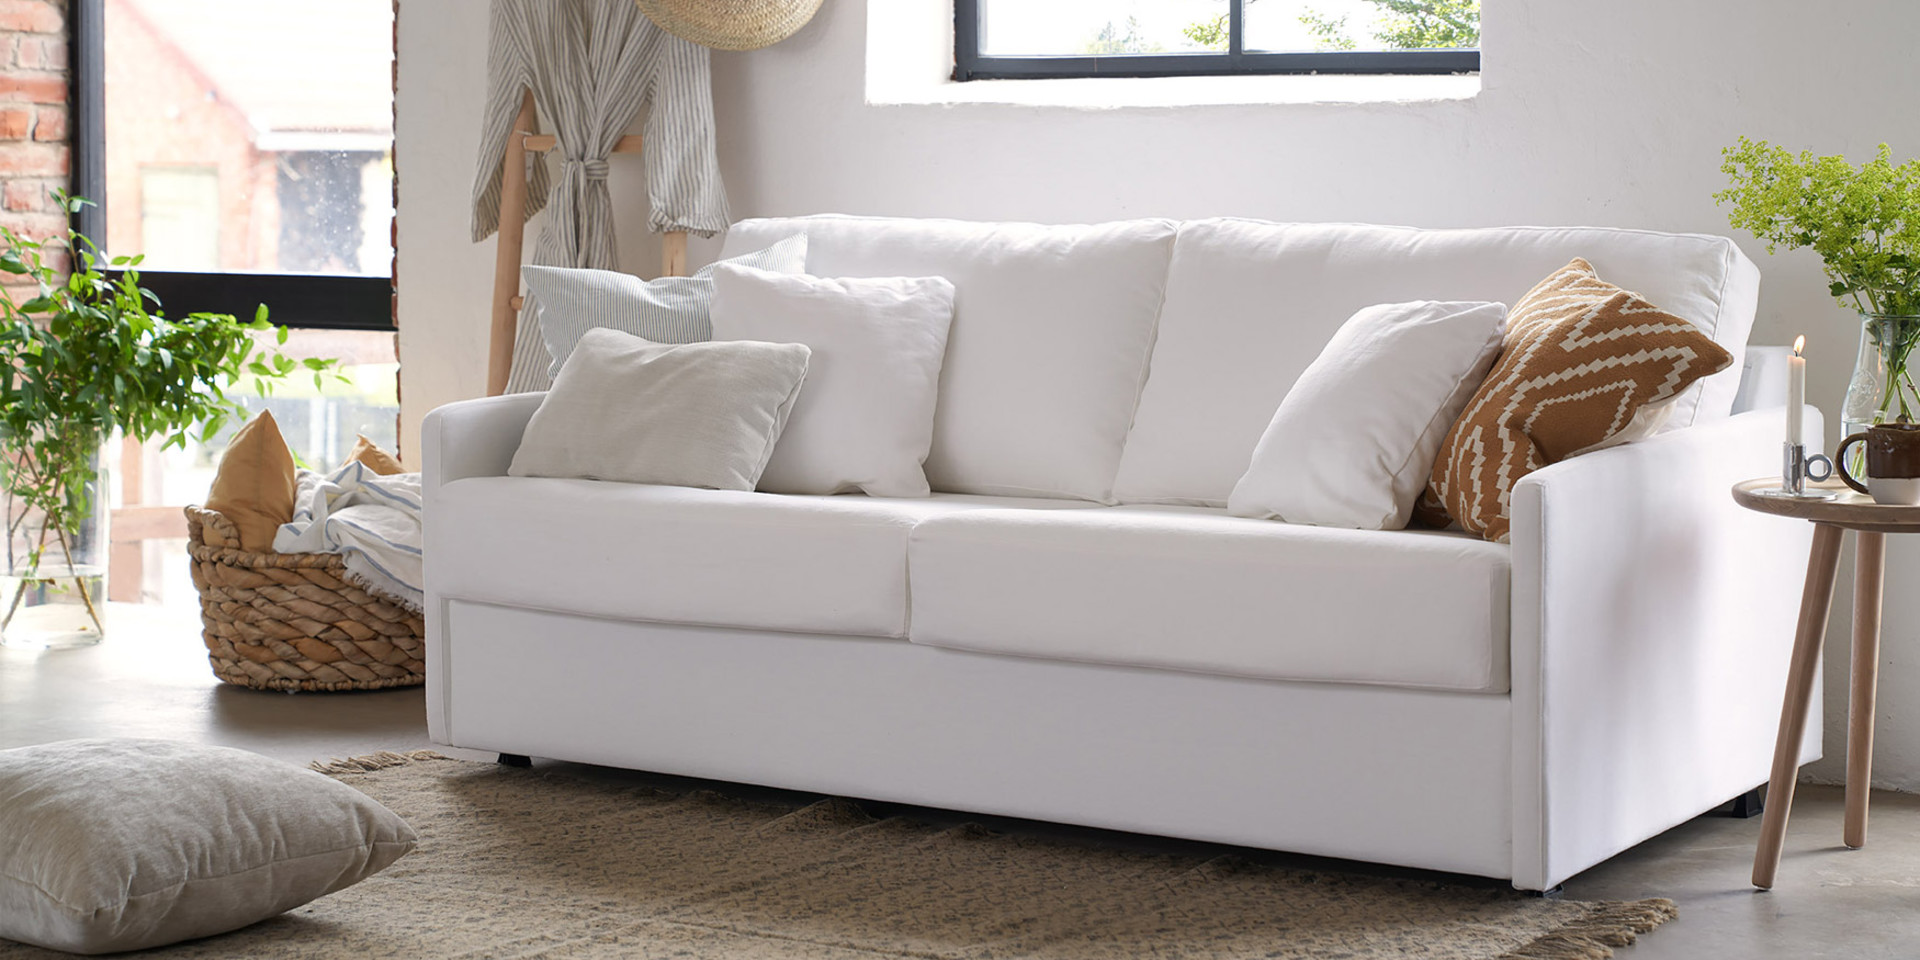 LUKAS_arrangement_sofa_bed4_caleido1420_white_3